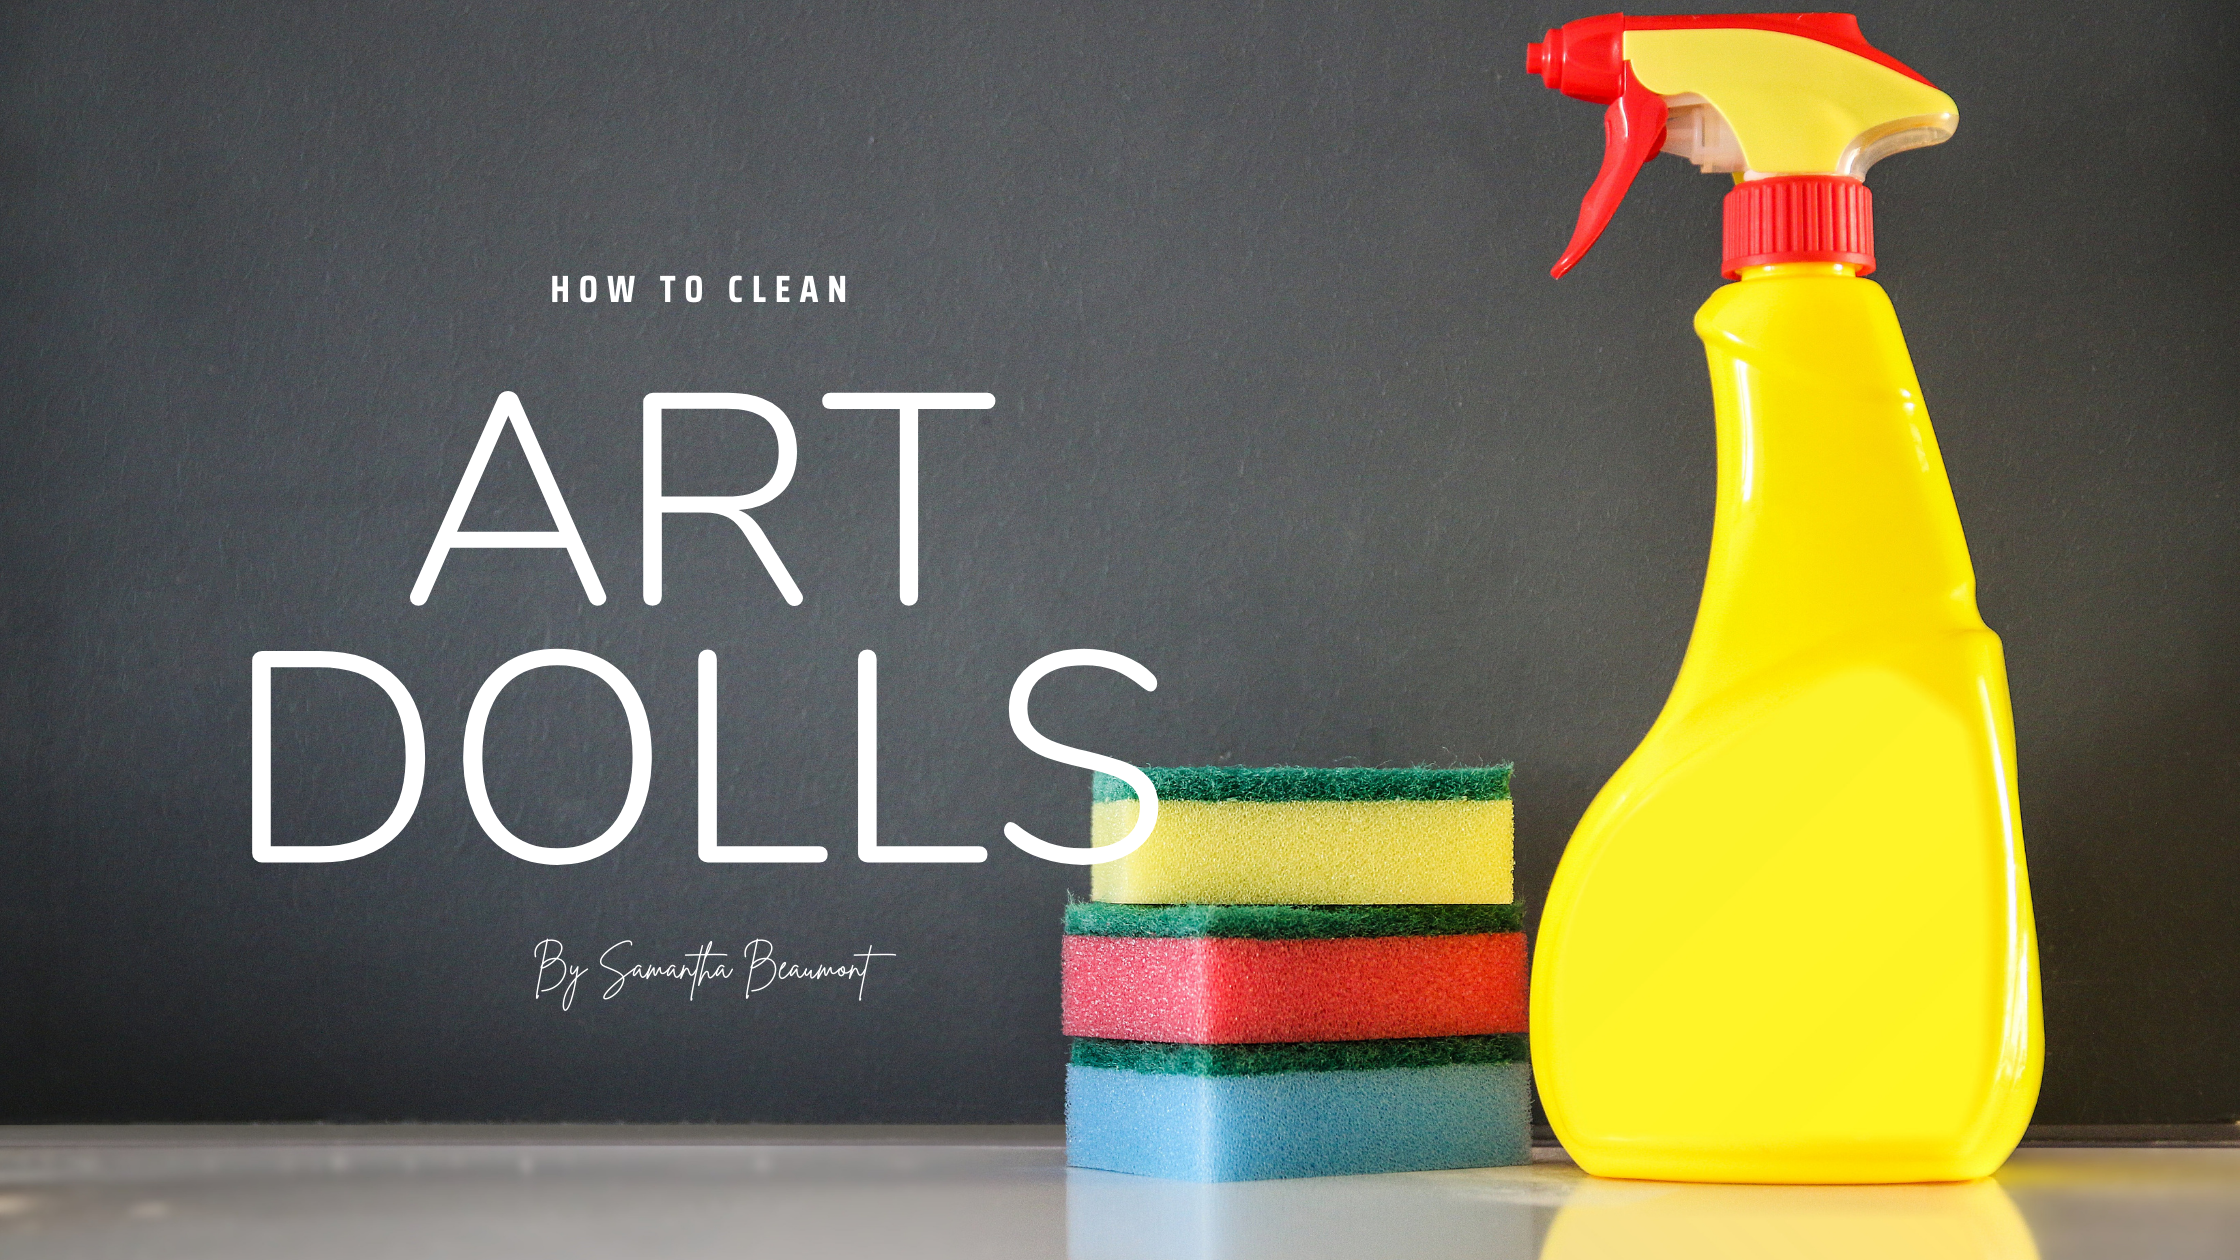 How to Clean Art Dolls